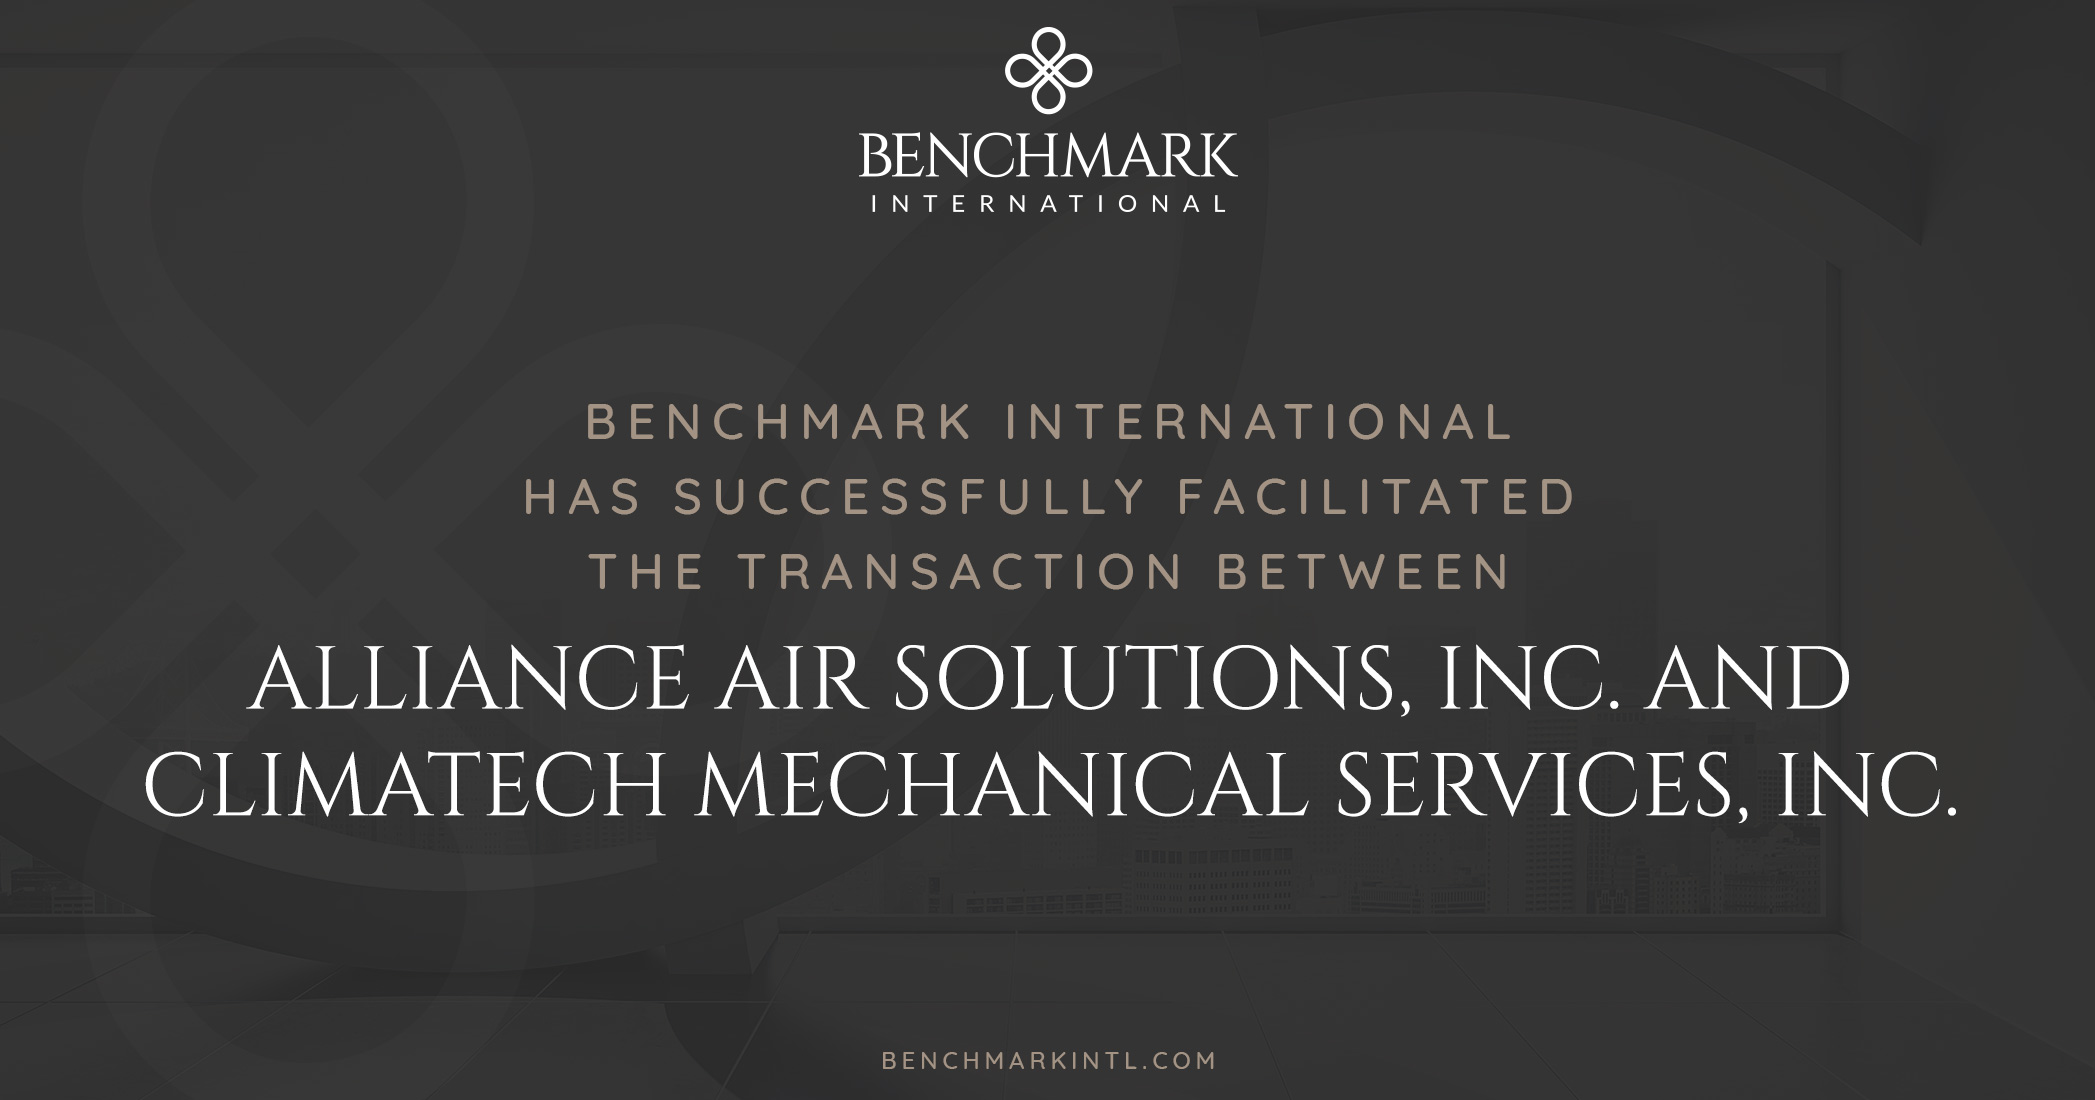 Benchmark International Has Successfully Facilitated the Transaction Between Alliance Air Solutions, Inc. and Climatech Mechanical Services, Inc.